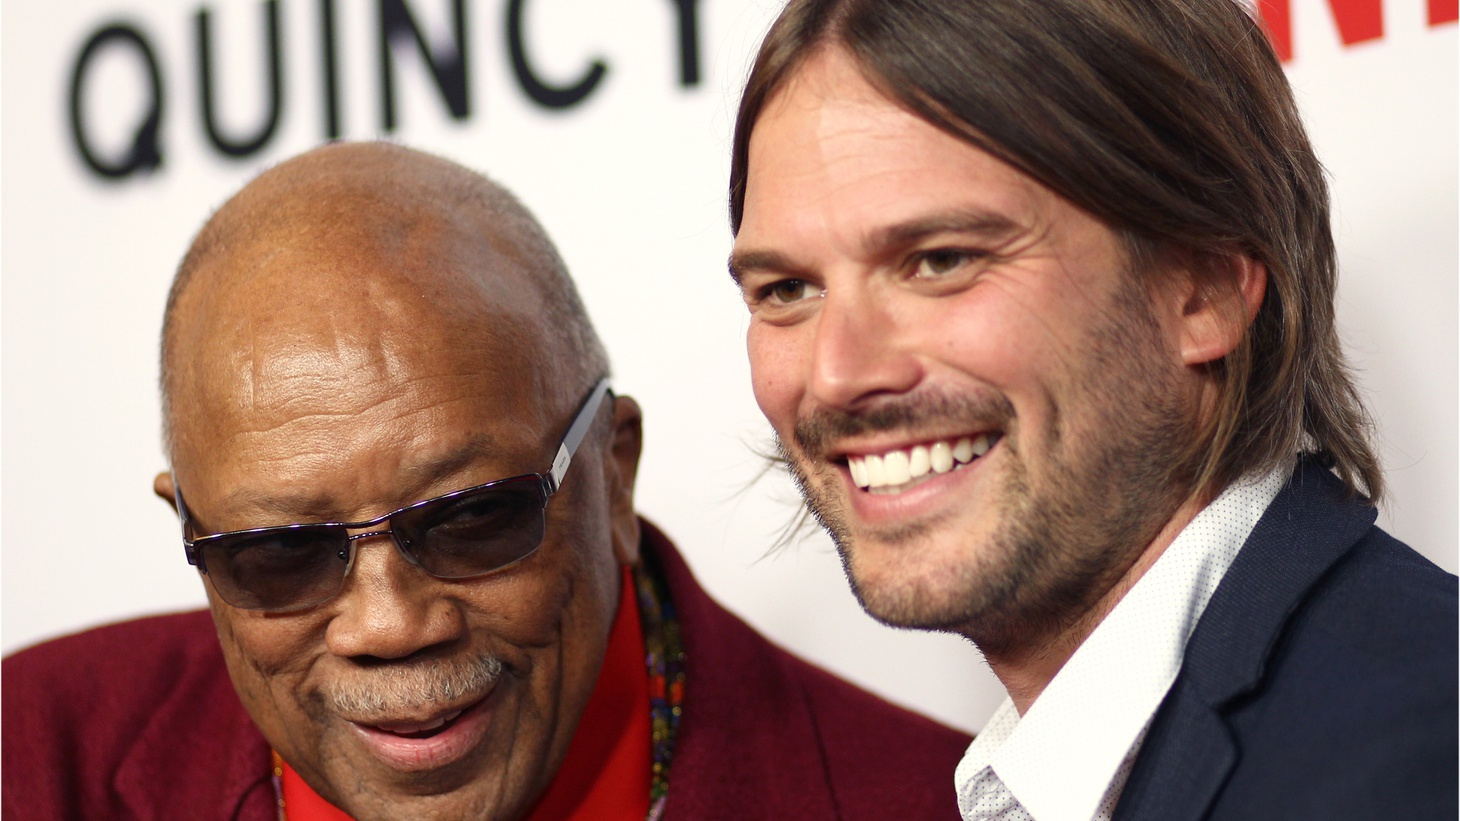 A new documentary about Quincy Jones looks at his incredible life and career that connected him to musicians from Frank Sinatra to Michael Jackson. Jones also composed dozens of film scores and produced movies and TV shows.